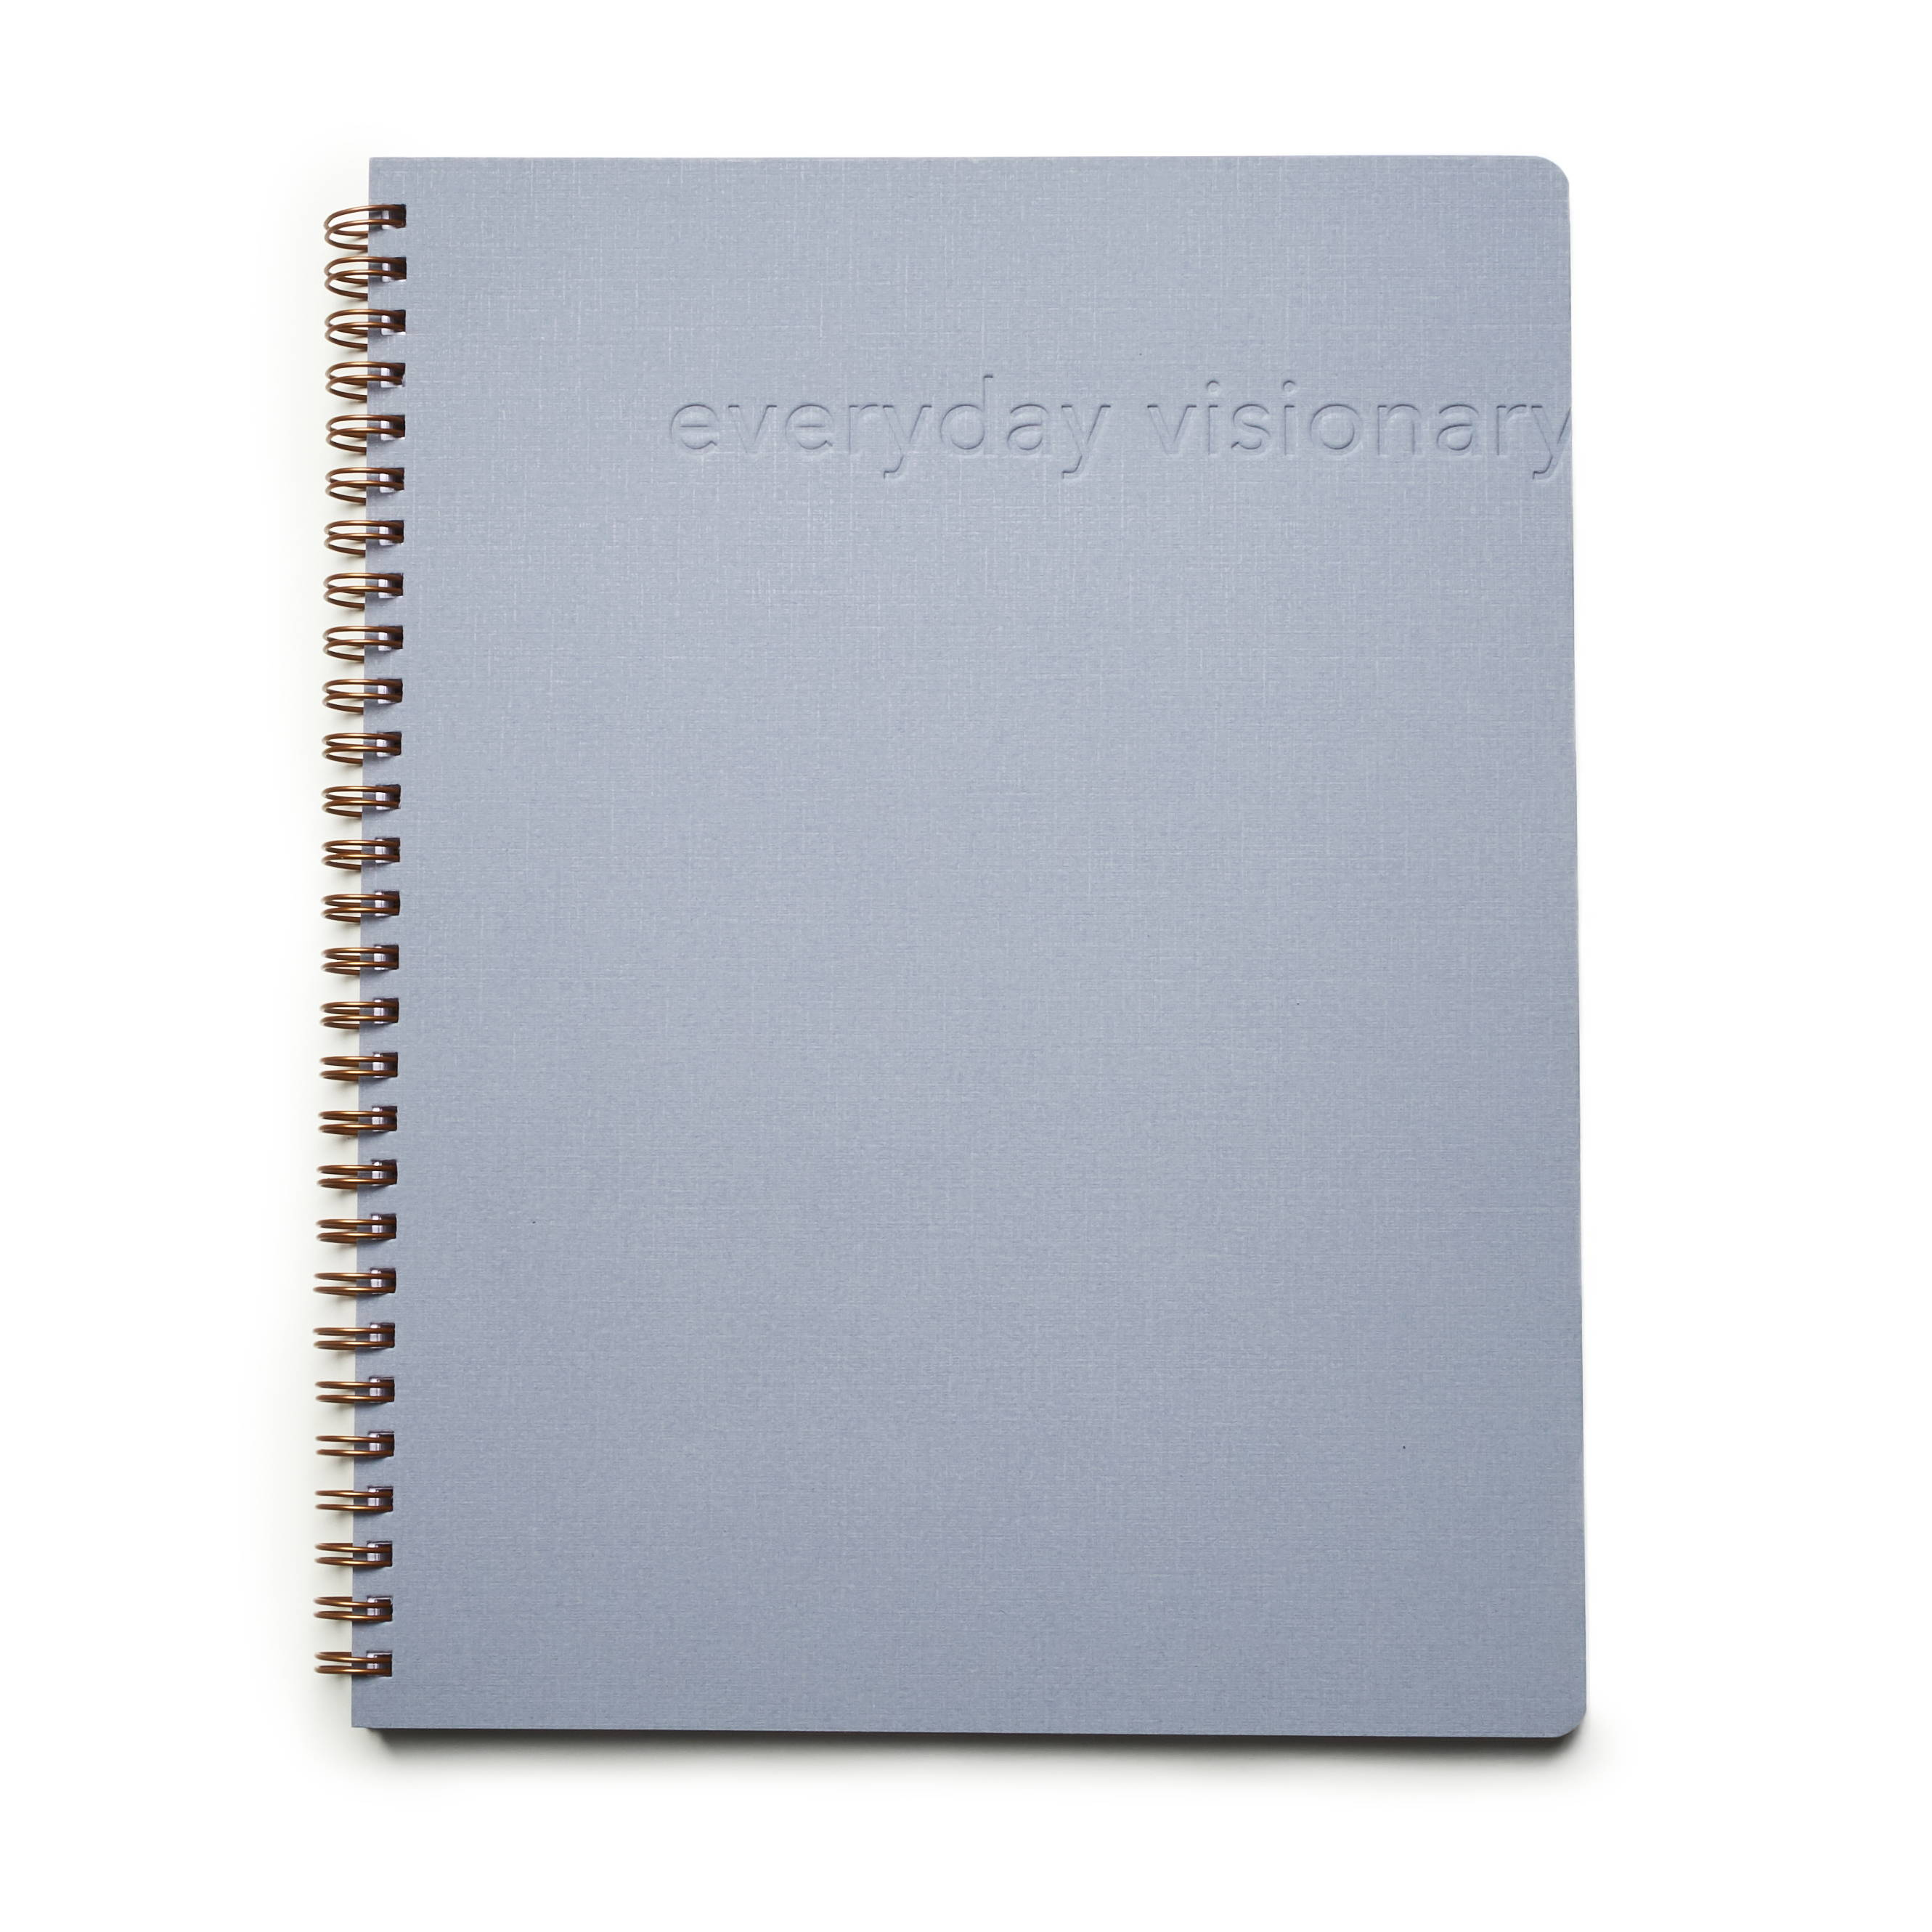 Everyday Visionary Grey Planner